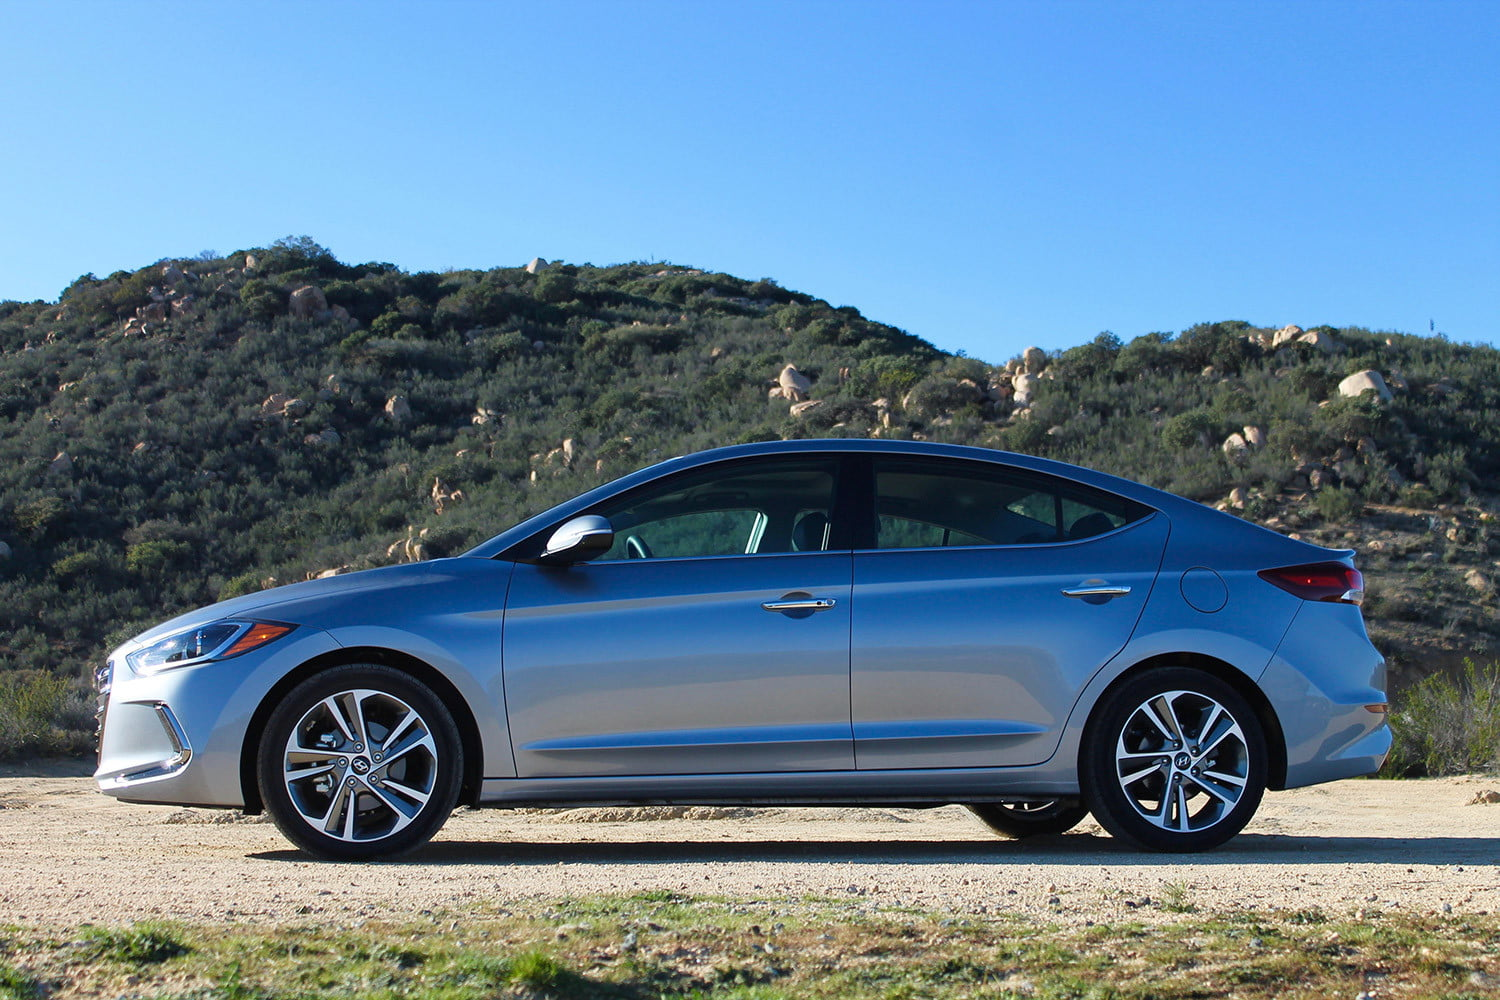 2017 hyundai elantra first drive review pictures specs performance digital trends. Black Bedroom Furniture Sets. Home Design Ideas